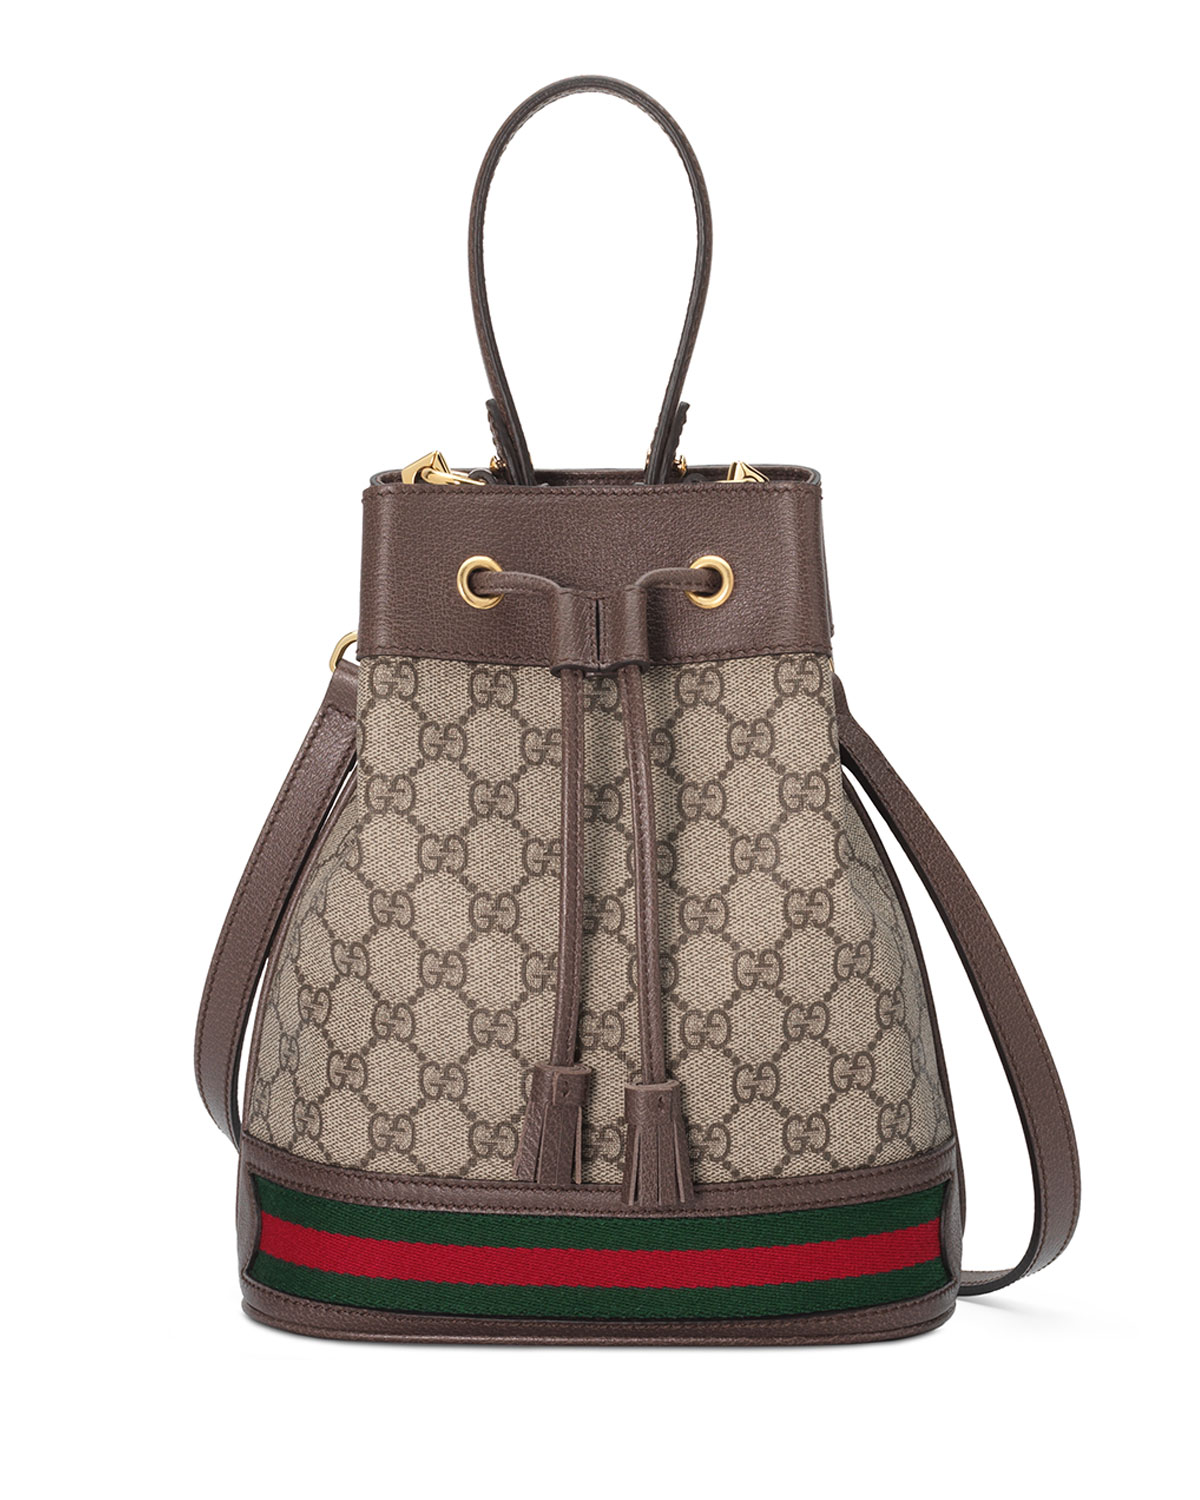 Gucci Ophidia Small GG Supreme Bucket Bag   Neiman Marcus 46bf19a2f7